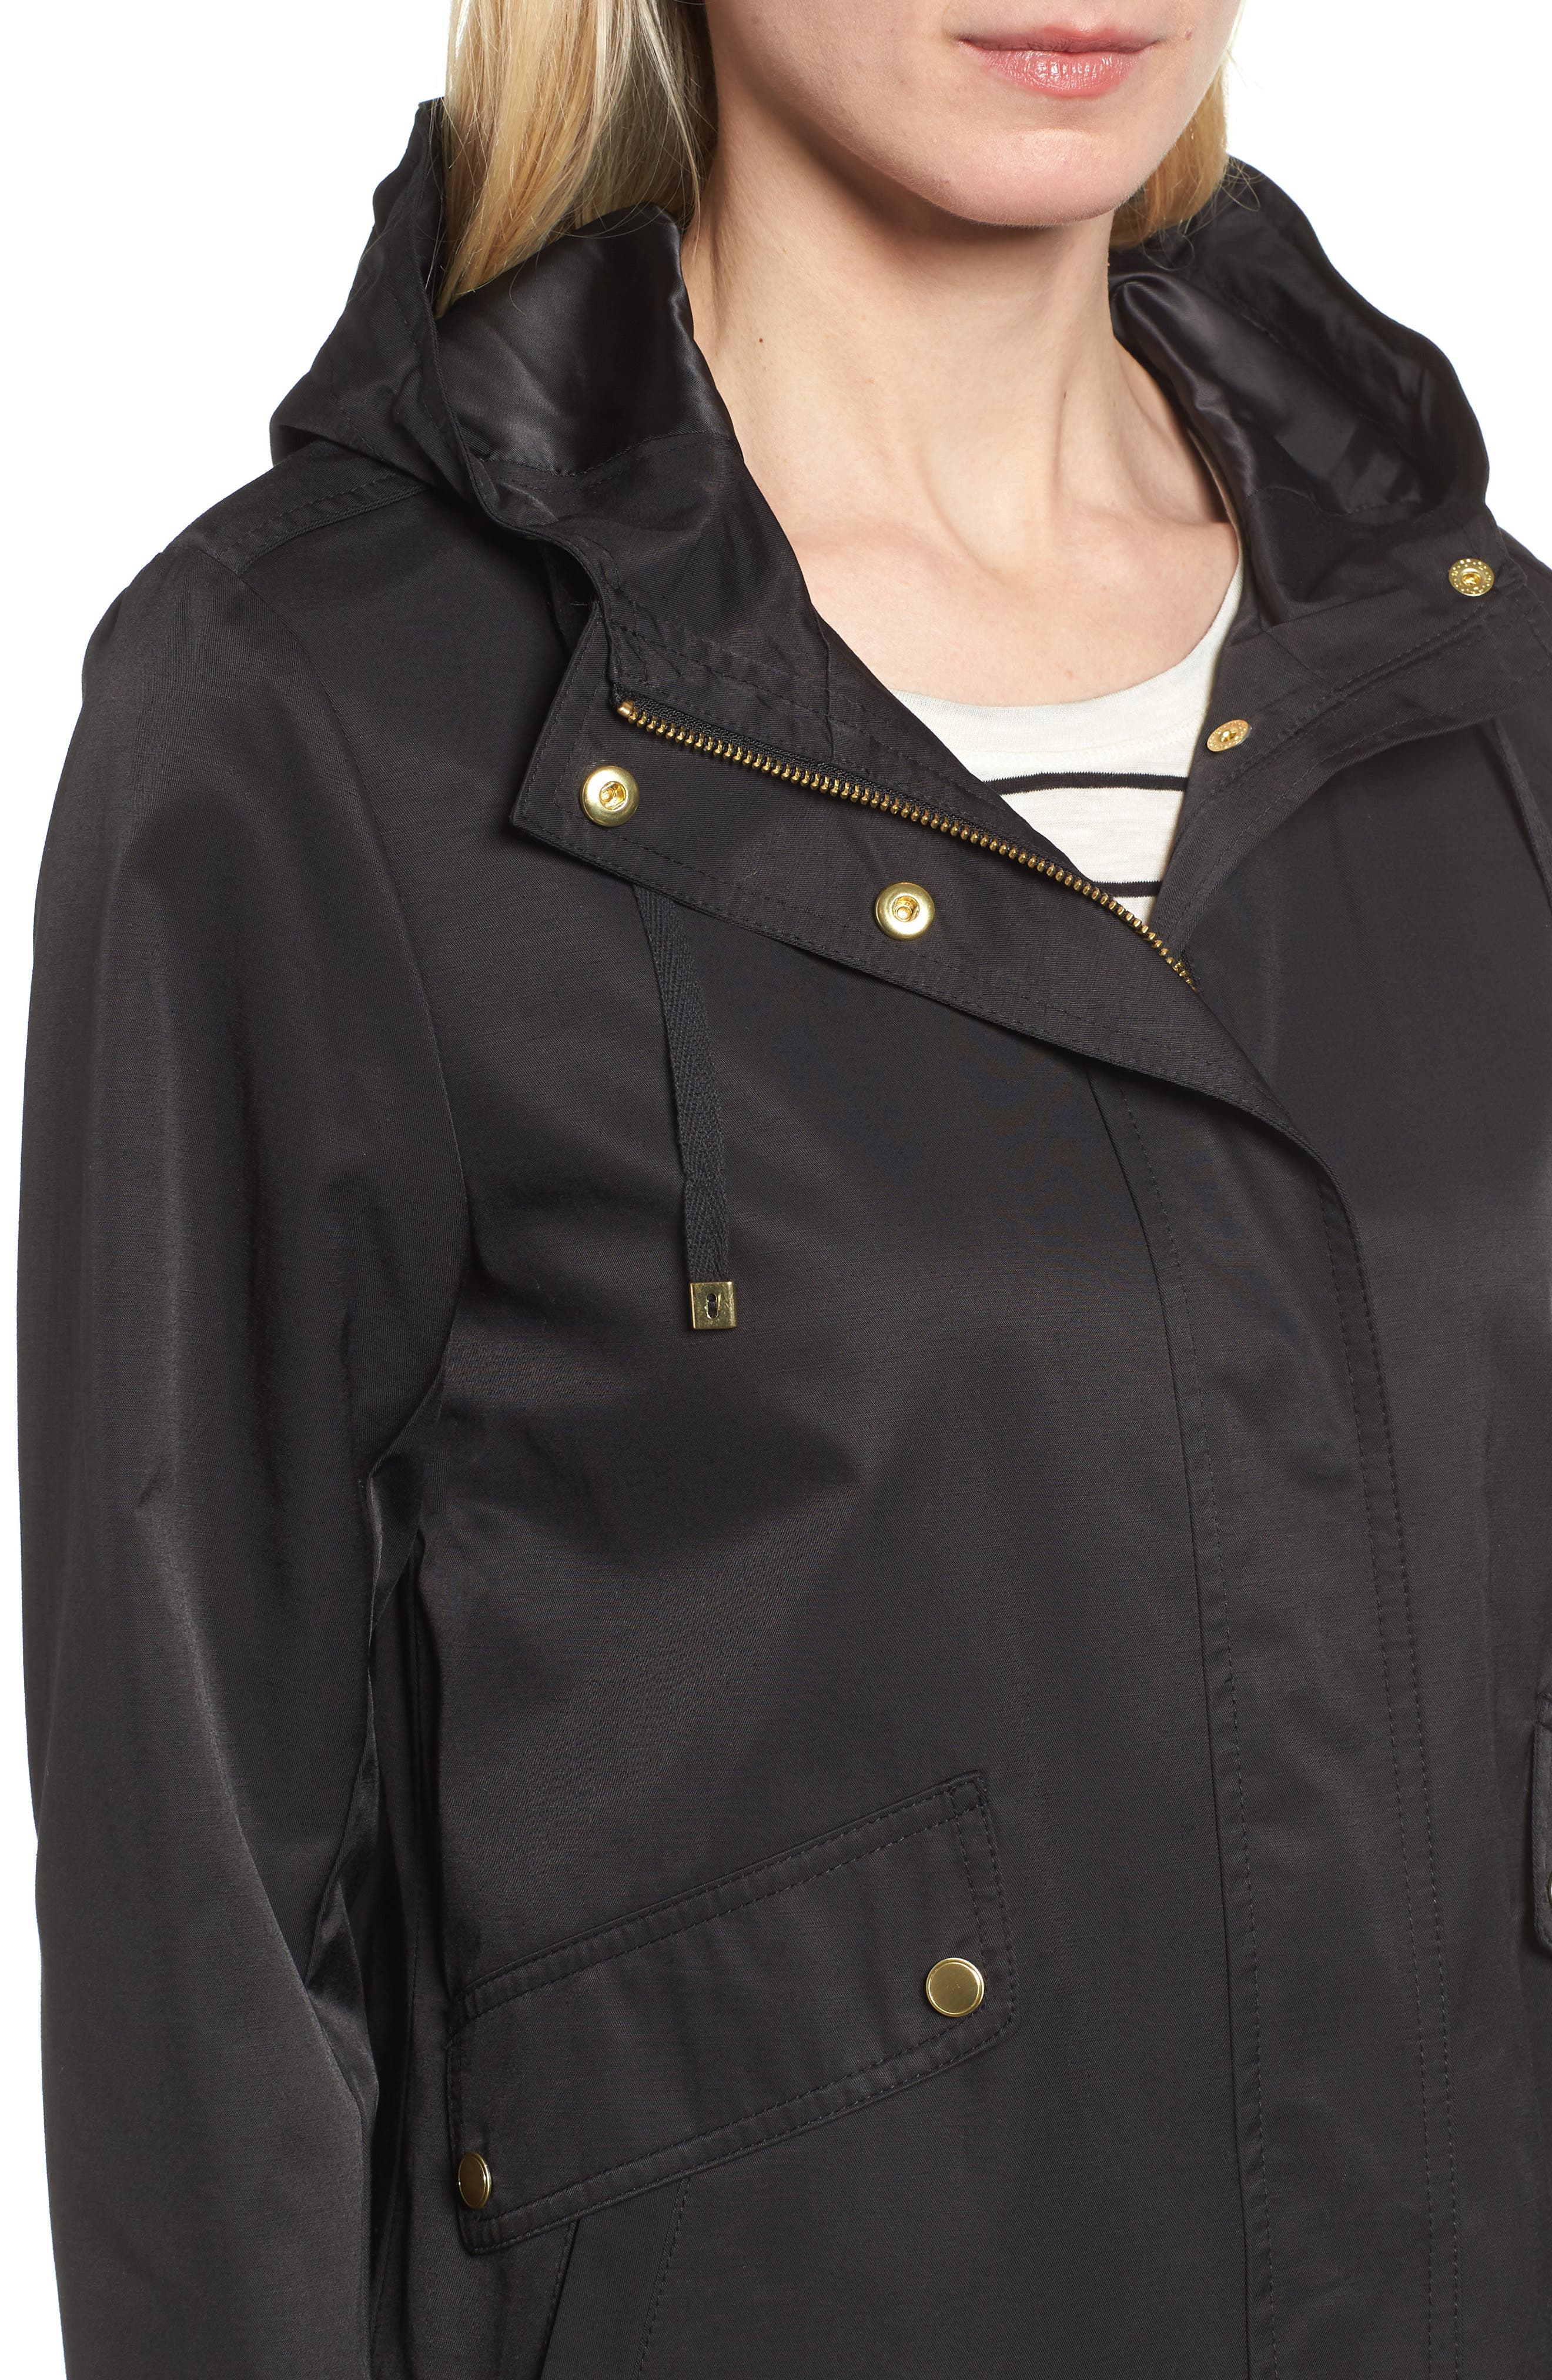 A-Line Jacket with Hood,                             Alternate thumbnail 4, color,                             001